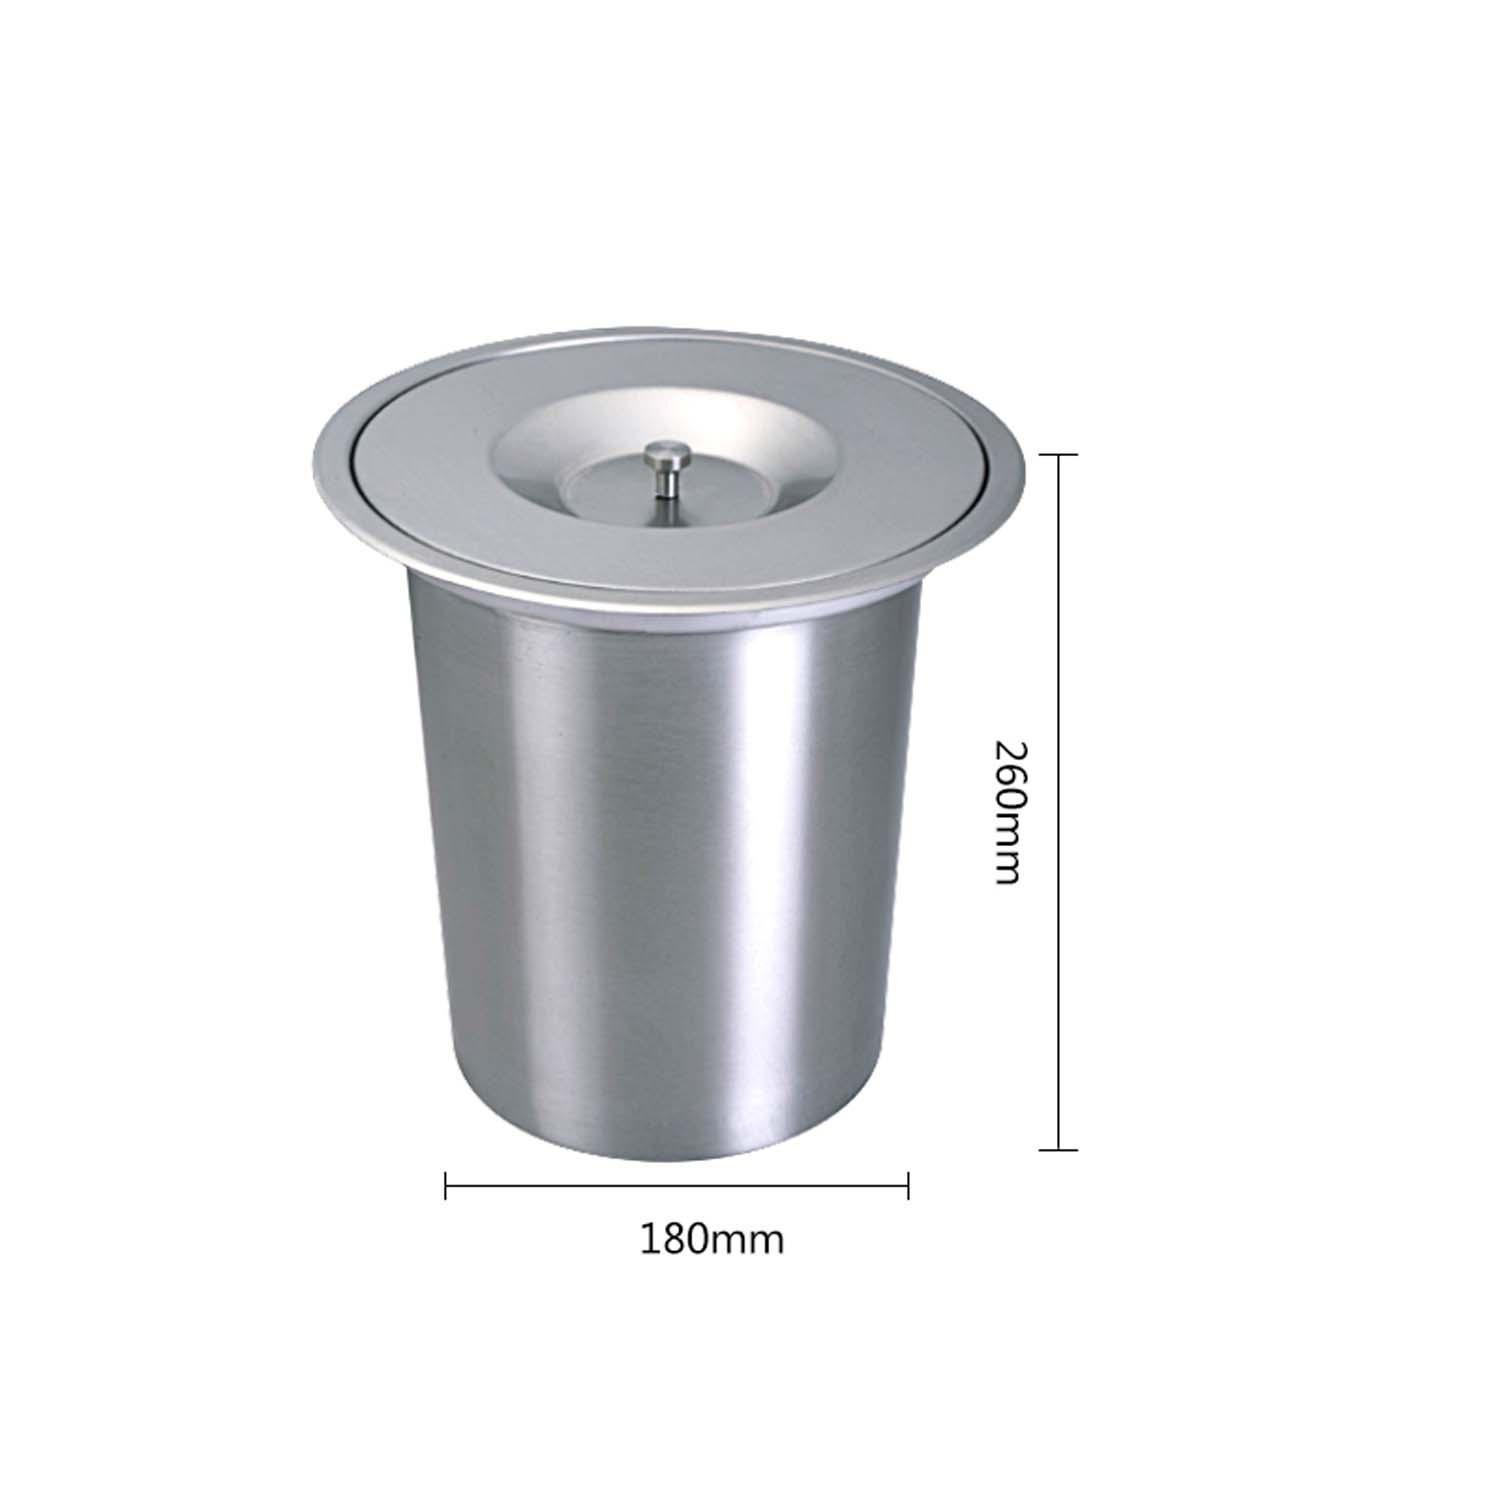 OOFYHOME stainless steel kitchen countertops embedded trash cans cupboard drawing process indoor storage hidden clean barrels